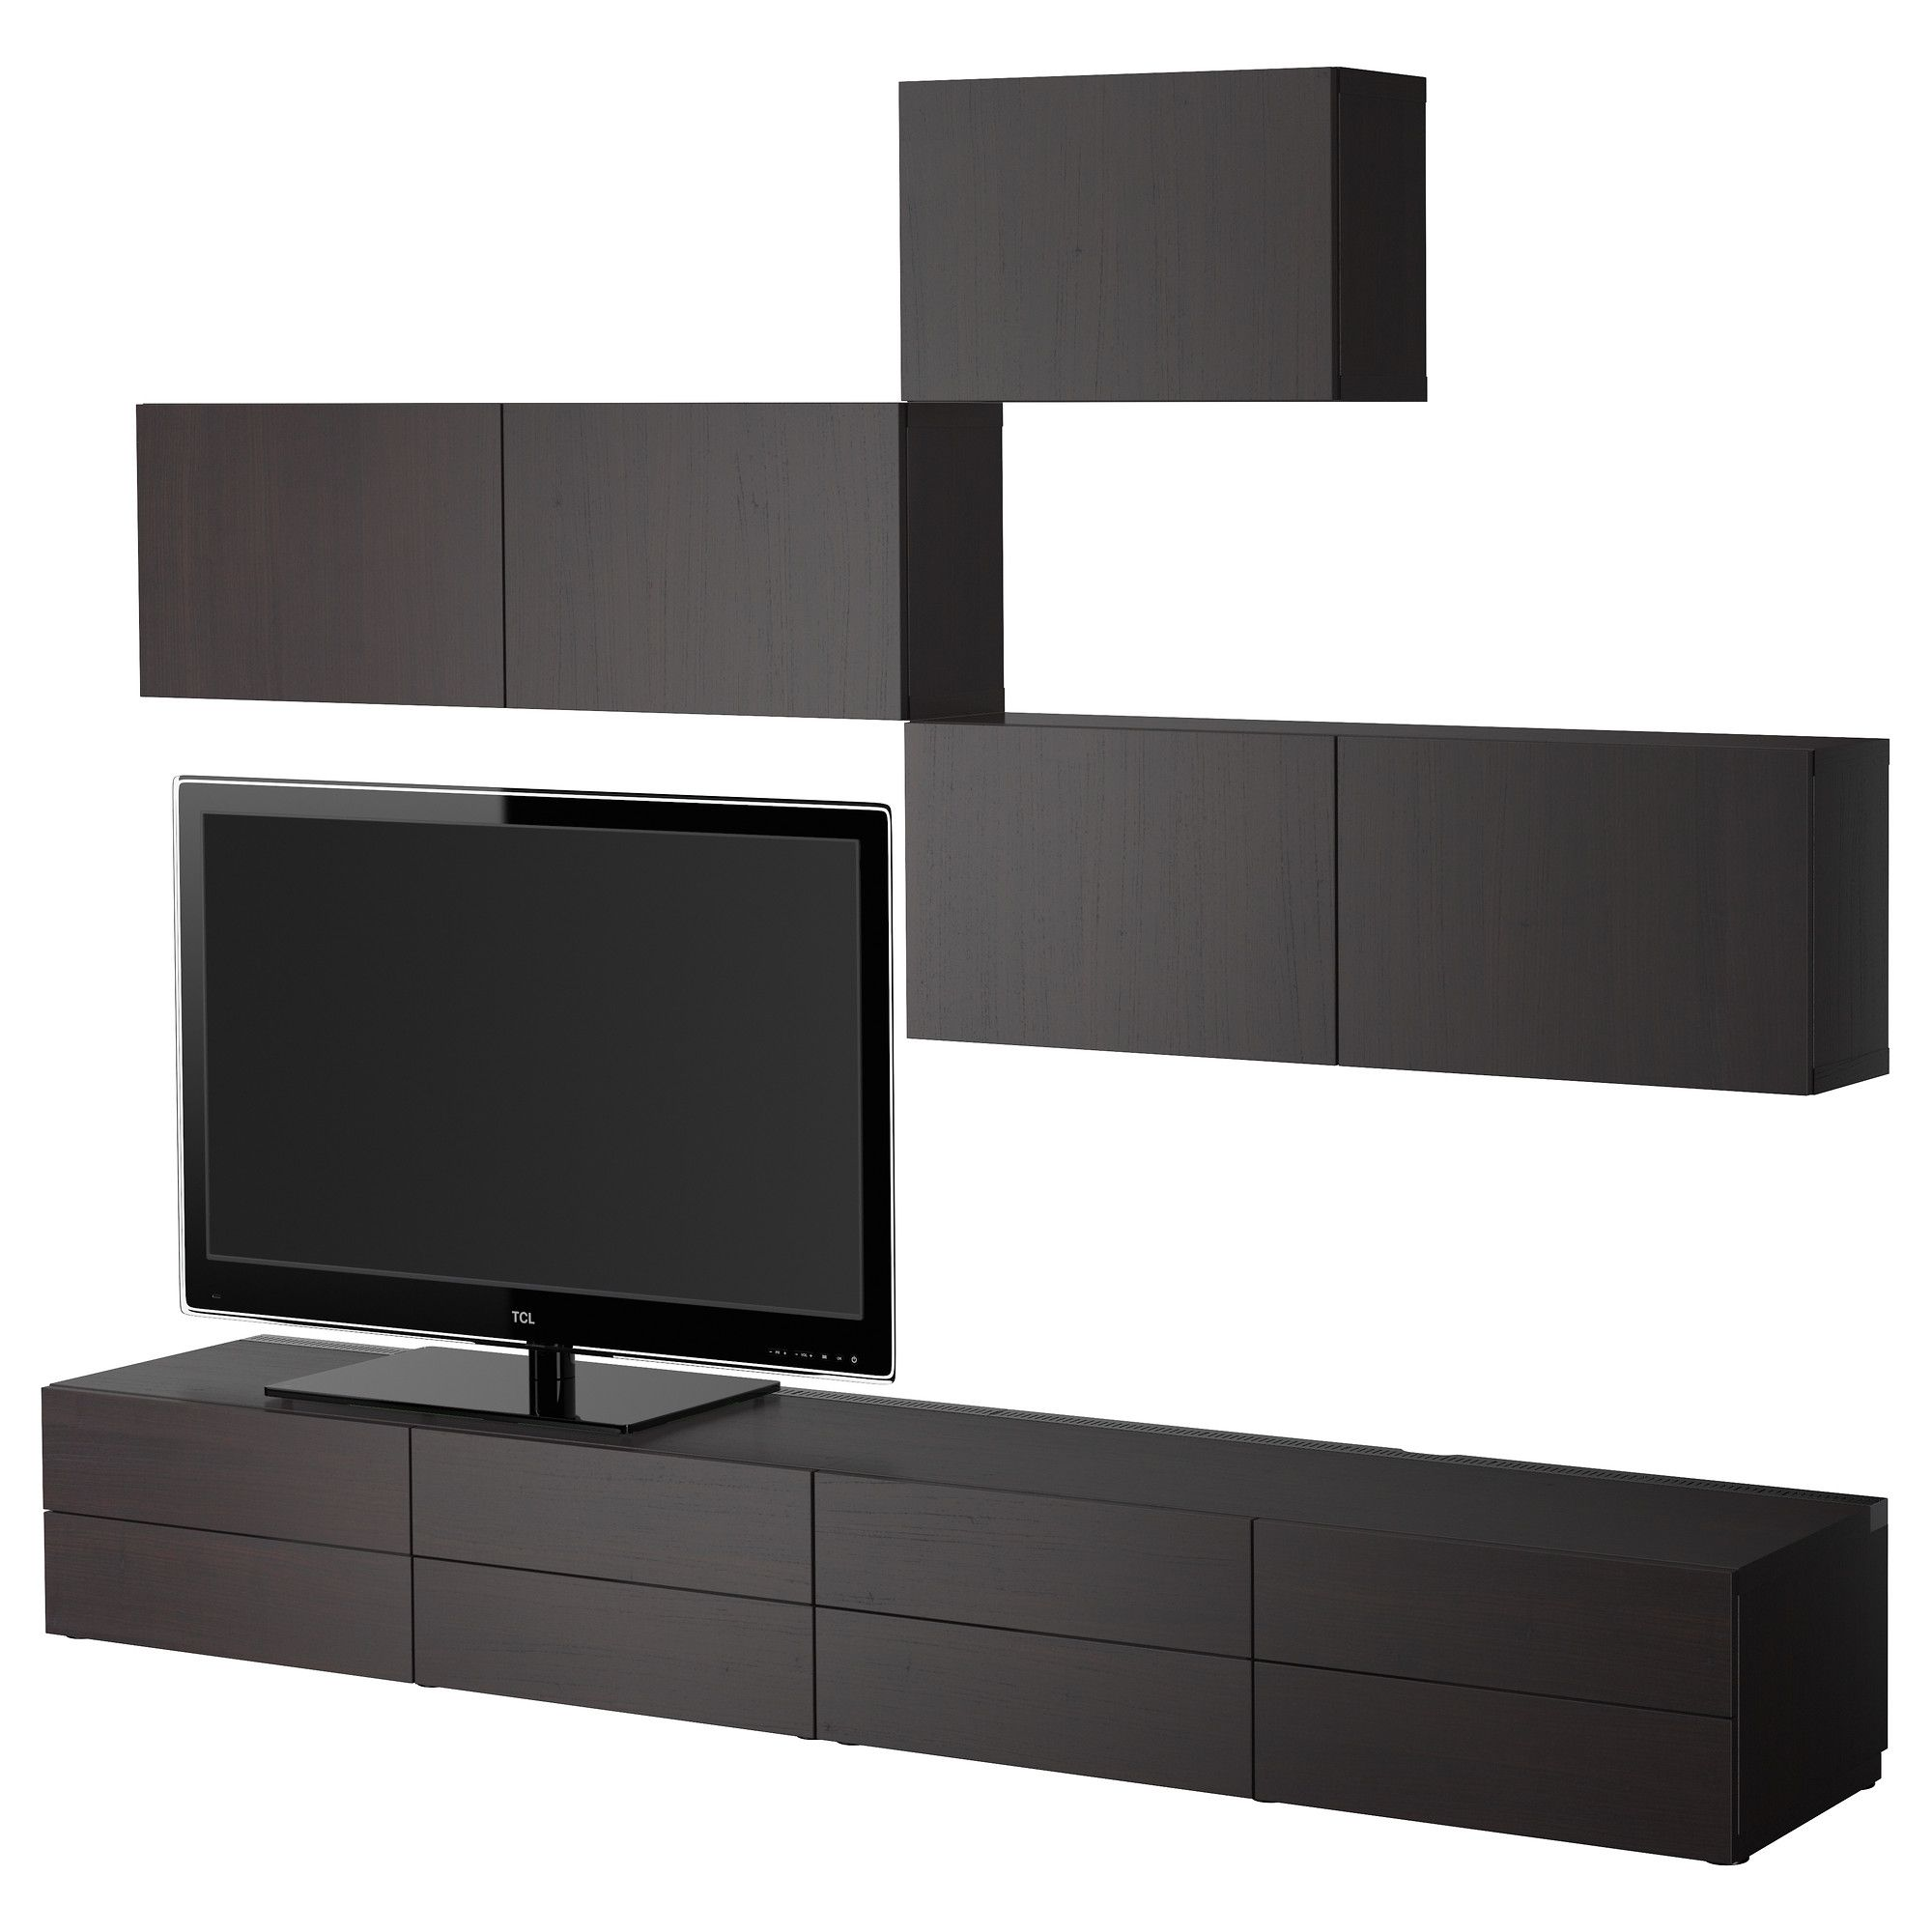 BEST… TV storage bination black brown IKEA Laundry cabinetry